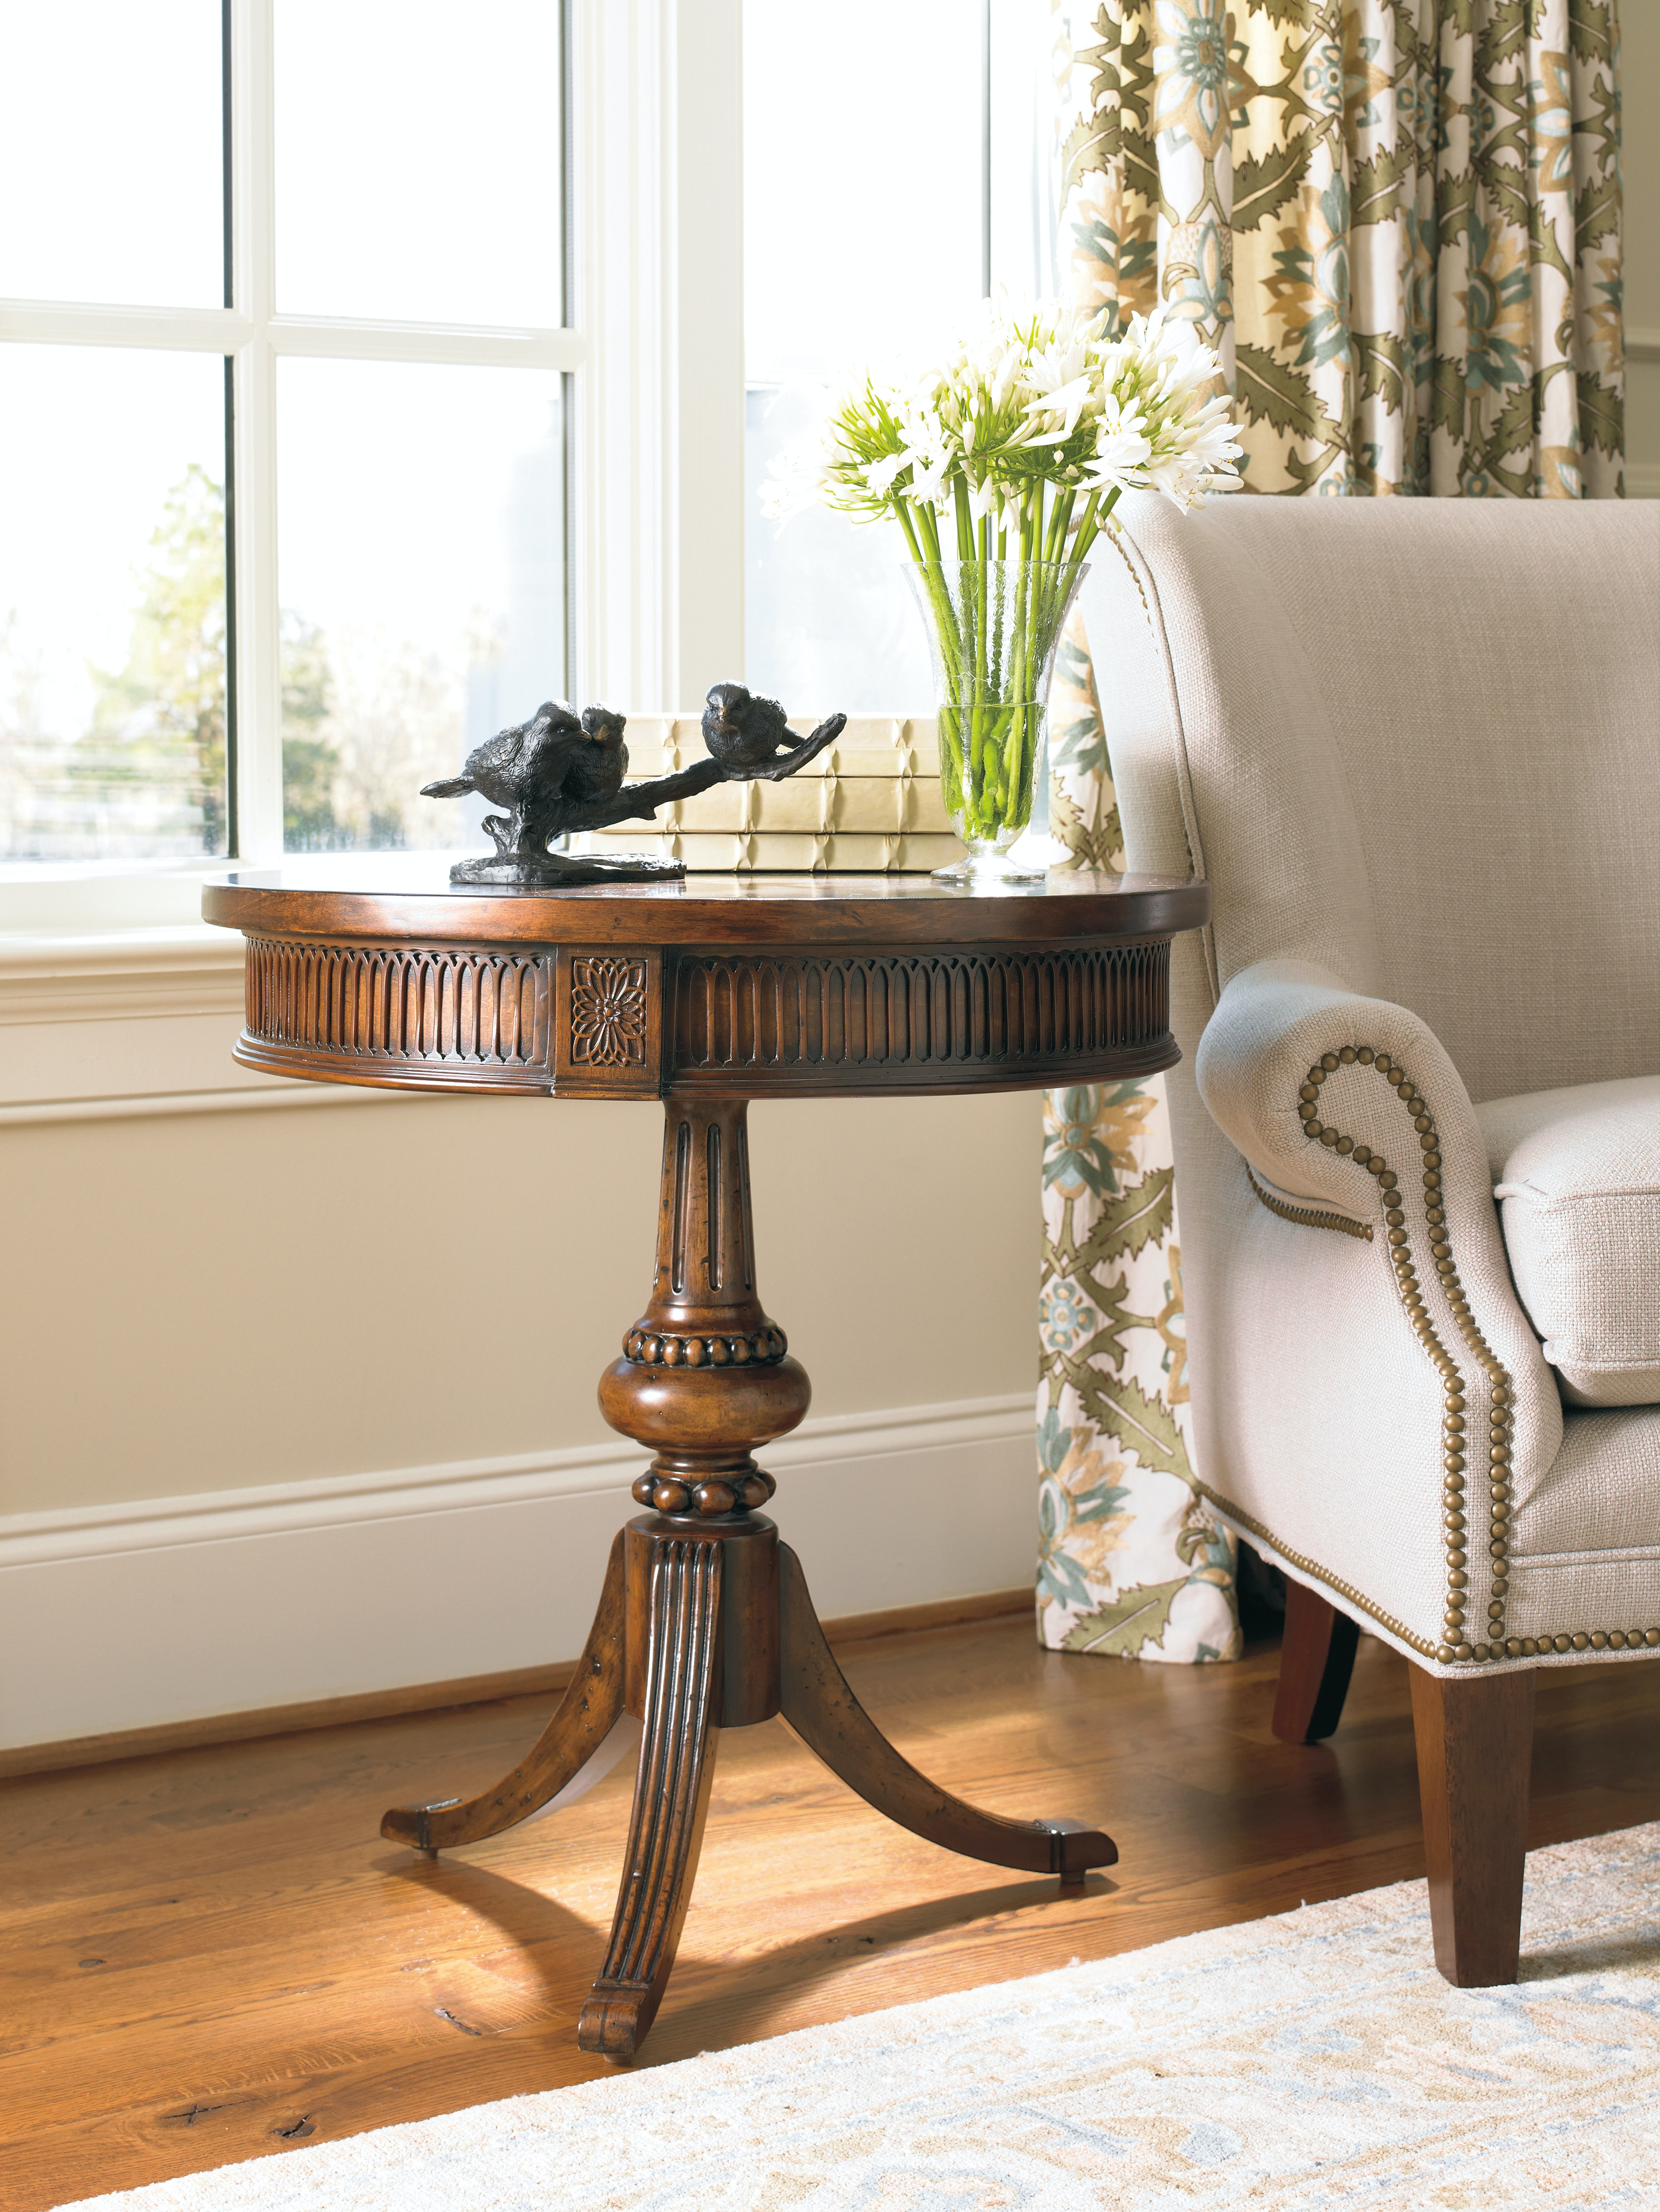 Perfect Hooker Furniture Round Pedestal Accent Table 500 50 828